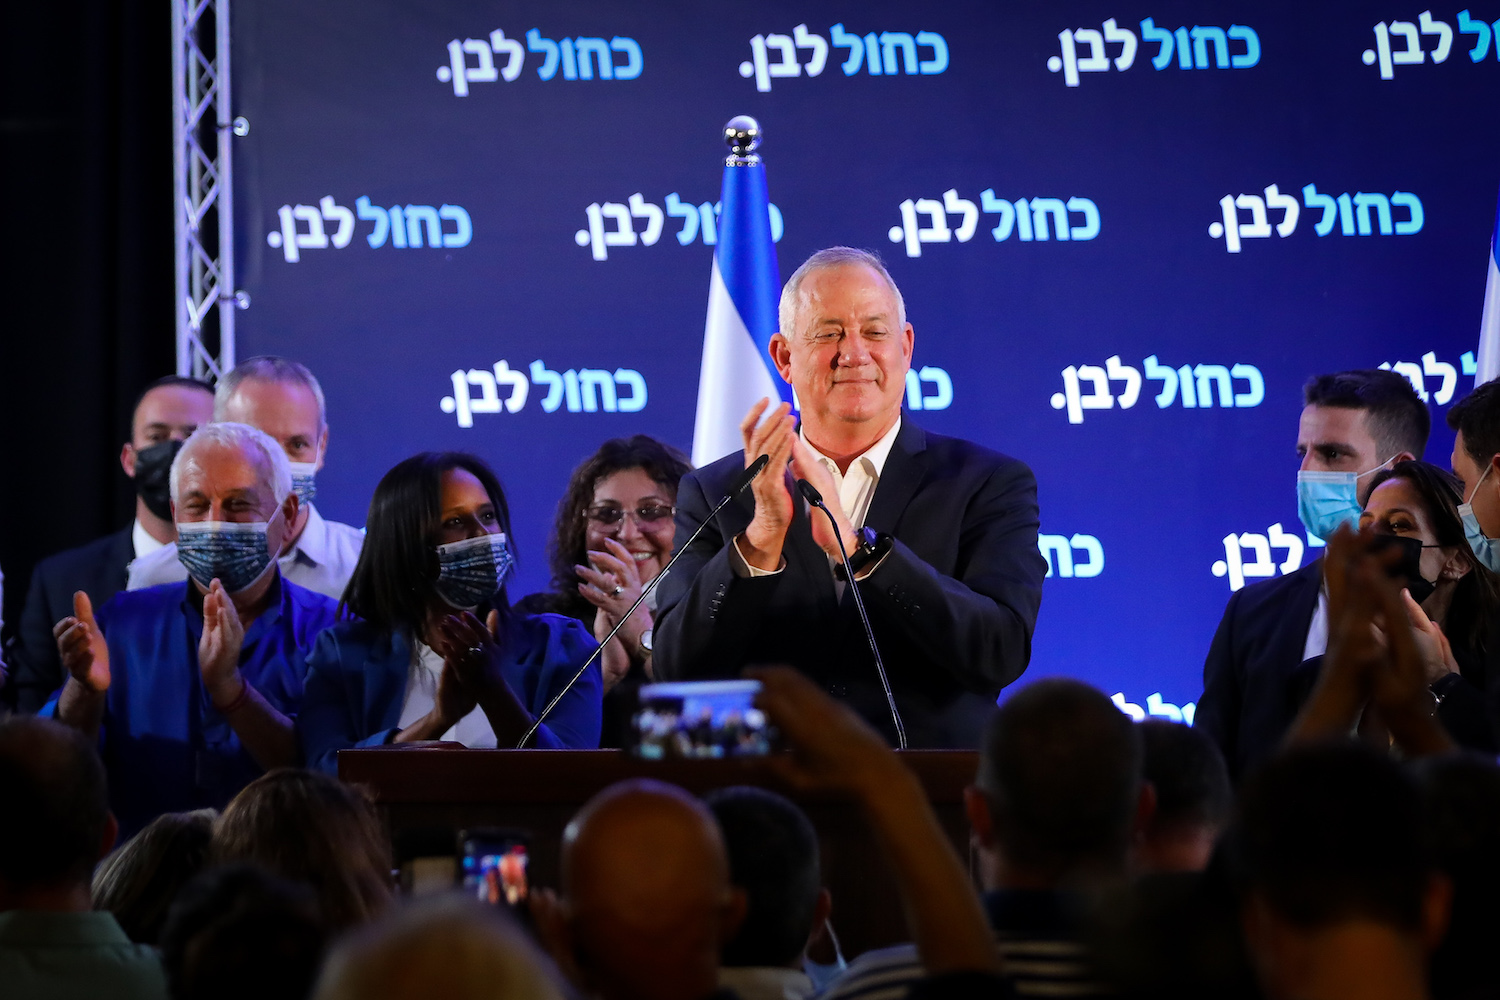 Head of Blue and White Party and Defense Benny Gantz speaks to supporters at his party's headquarters in Ramat Gan on elections night, March 23, 2021. (Flash90)